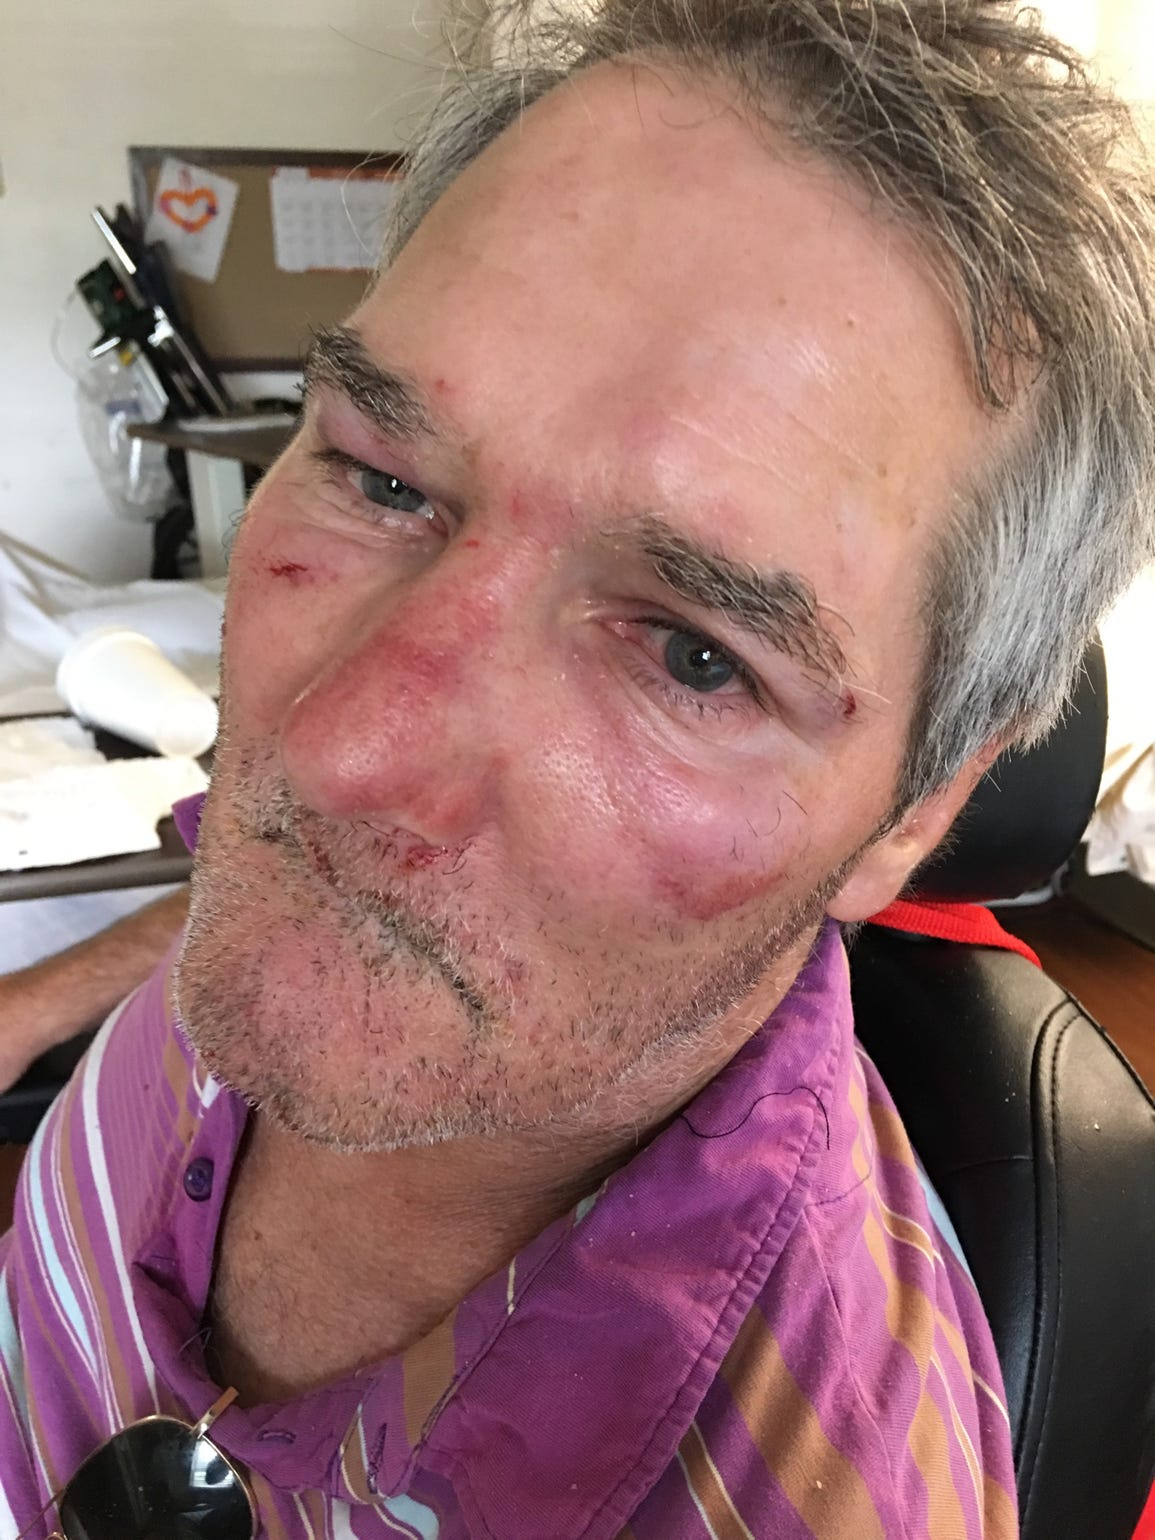 Christopher York after being assaulted by another resident of Heritage Park Rehabilitation and Healthcare in Fort Myers in 2016.